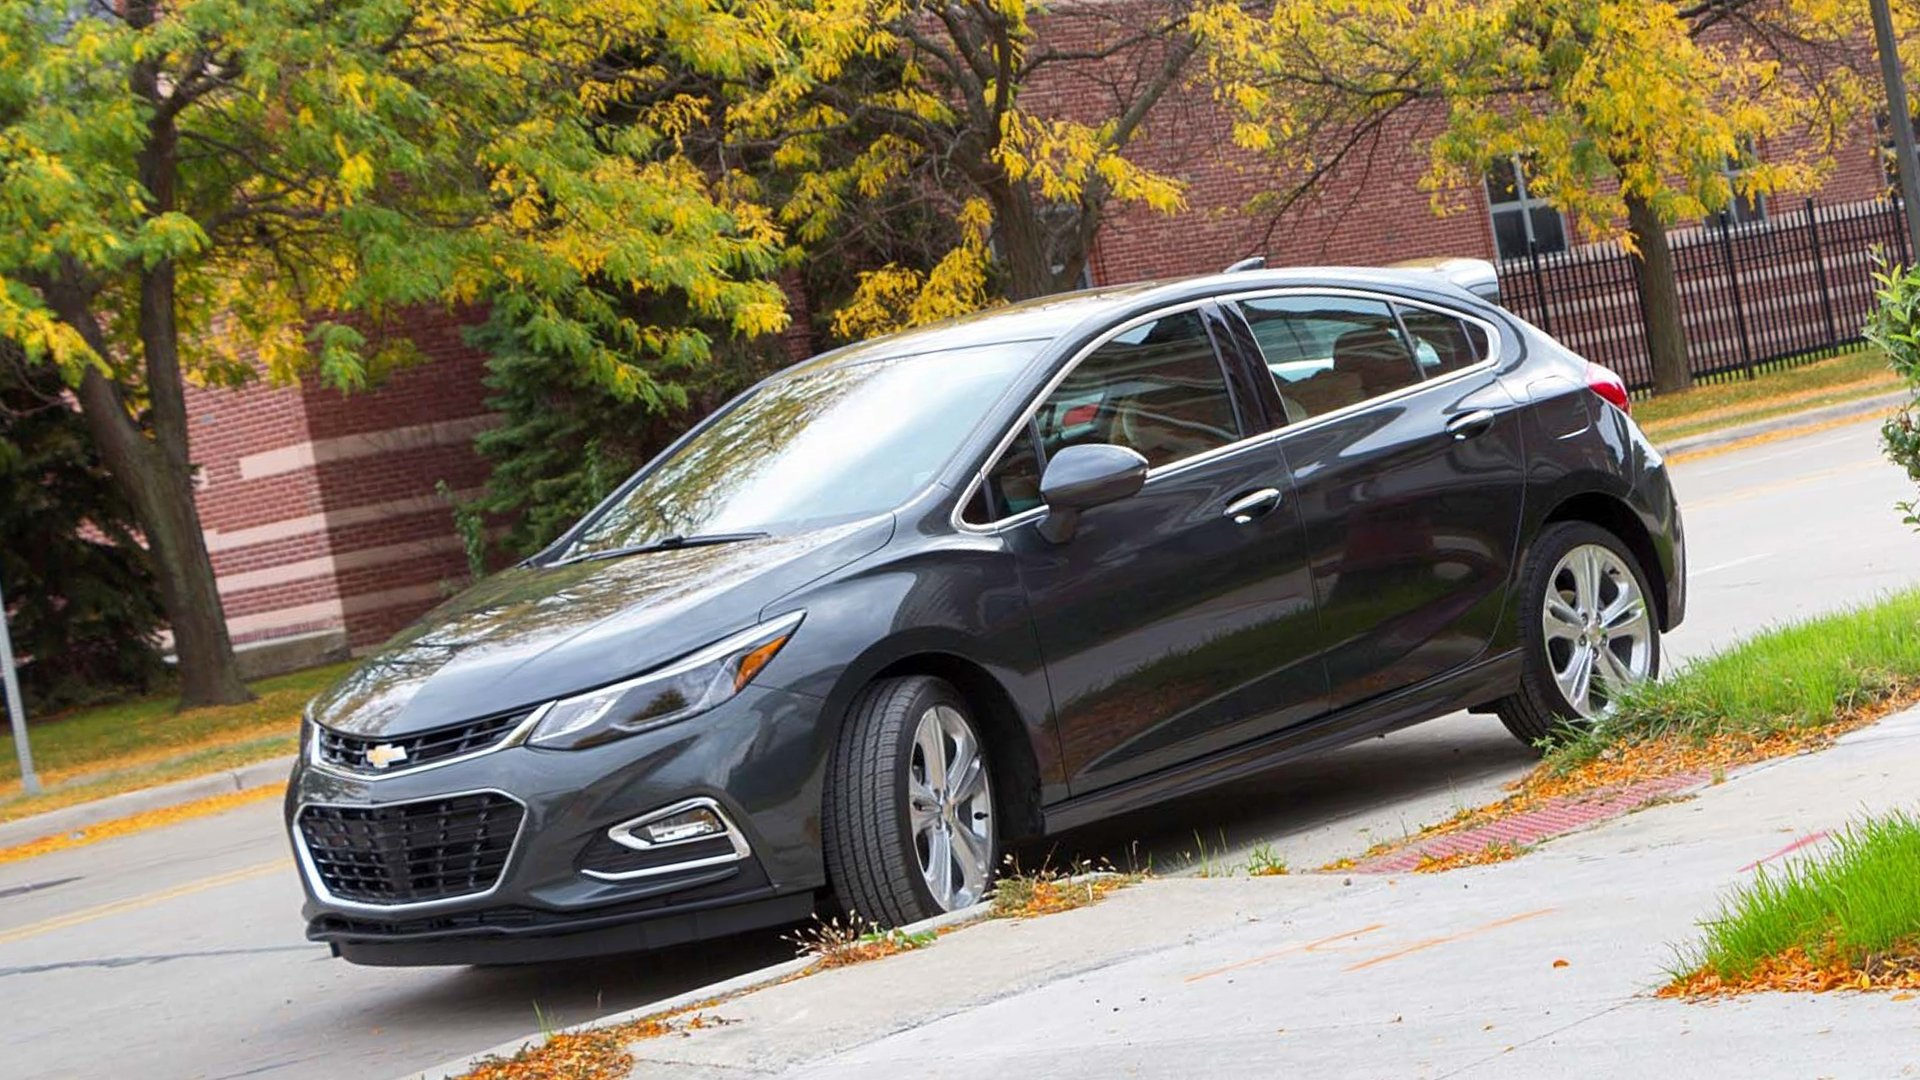 New 2019 Chevrolet Cruze First Pictures